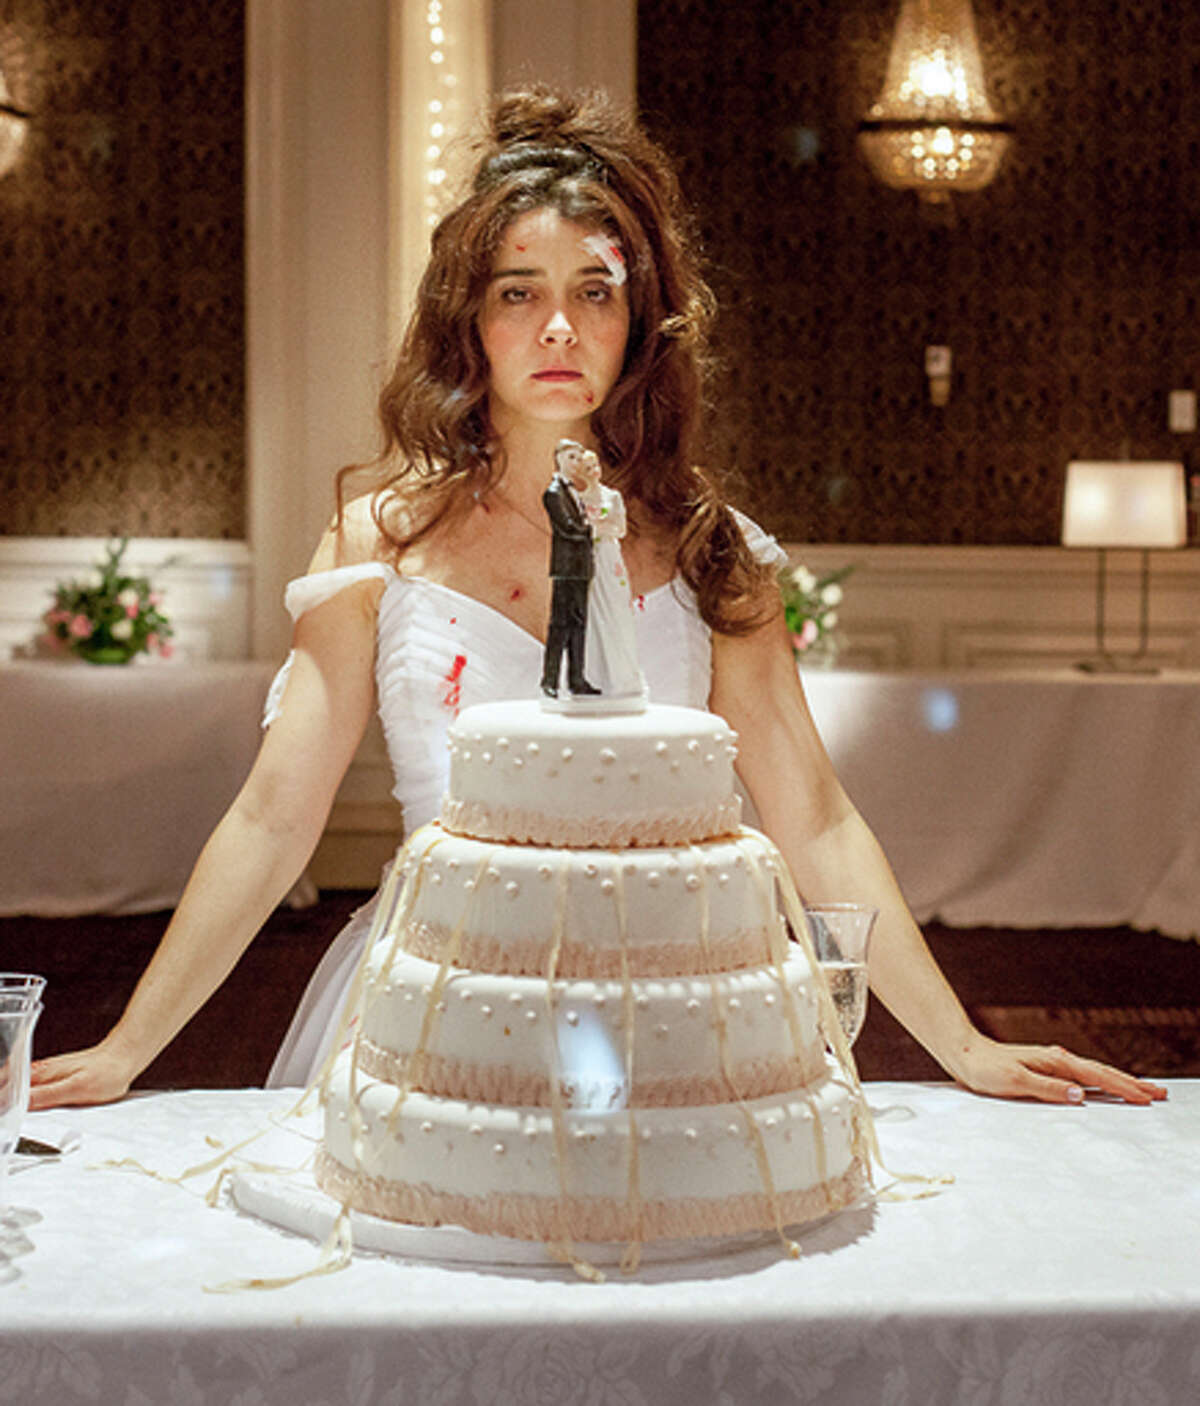 WILD TALES: Five stars From Argentina comes this Oscar-nominated anthology of six short stories about sweet, sometimes bloody revenge. (R) Read the review: 6 bursts of inventiveness